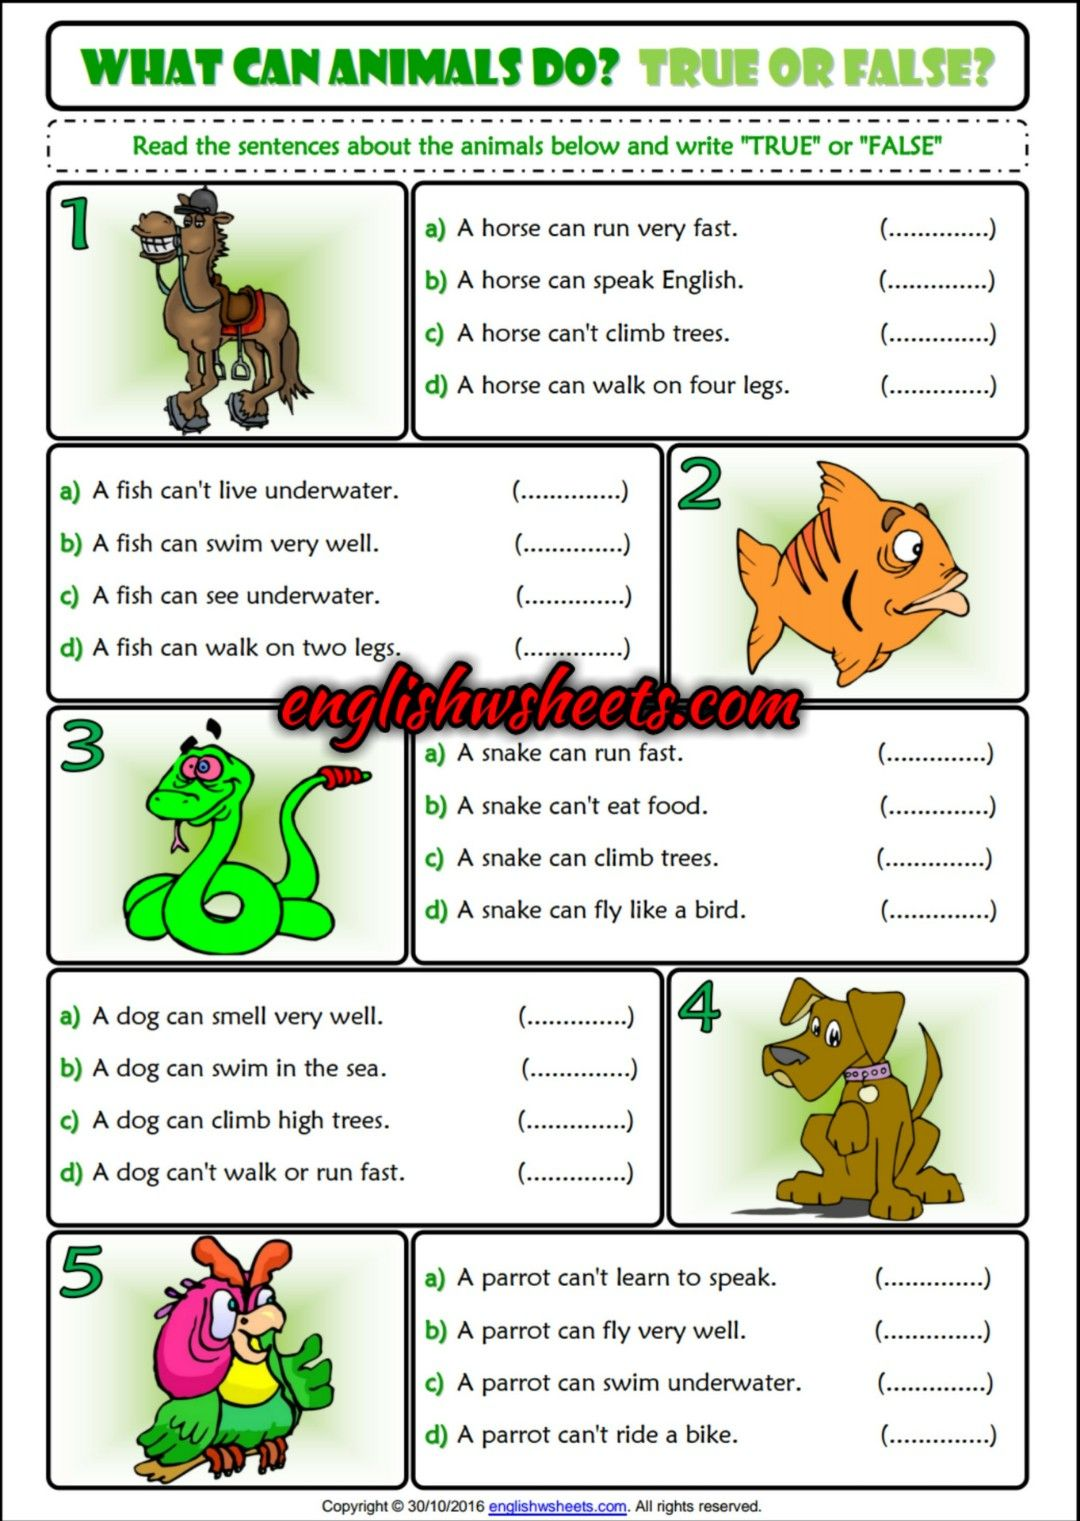 What can animals do? True or False ESL Printable Grammar Exercise ...